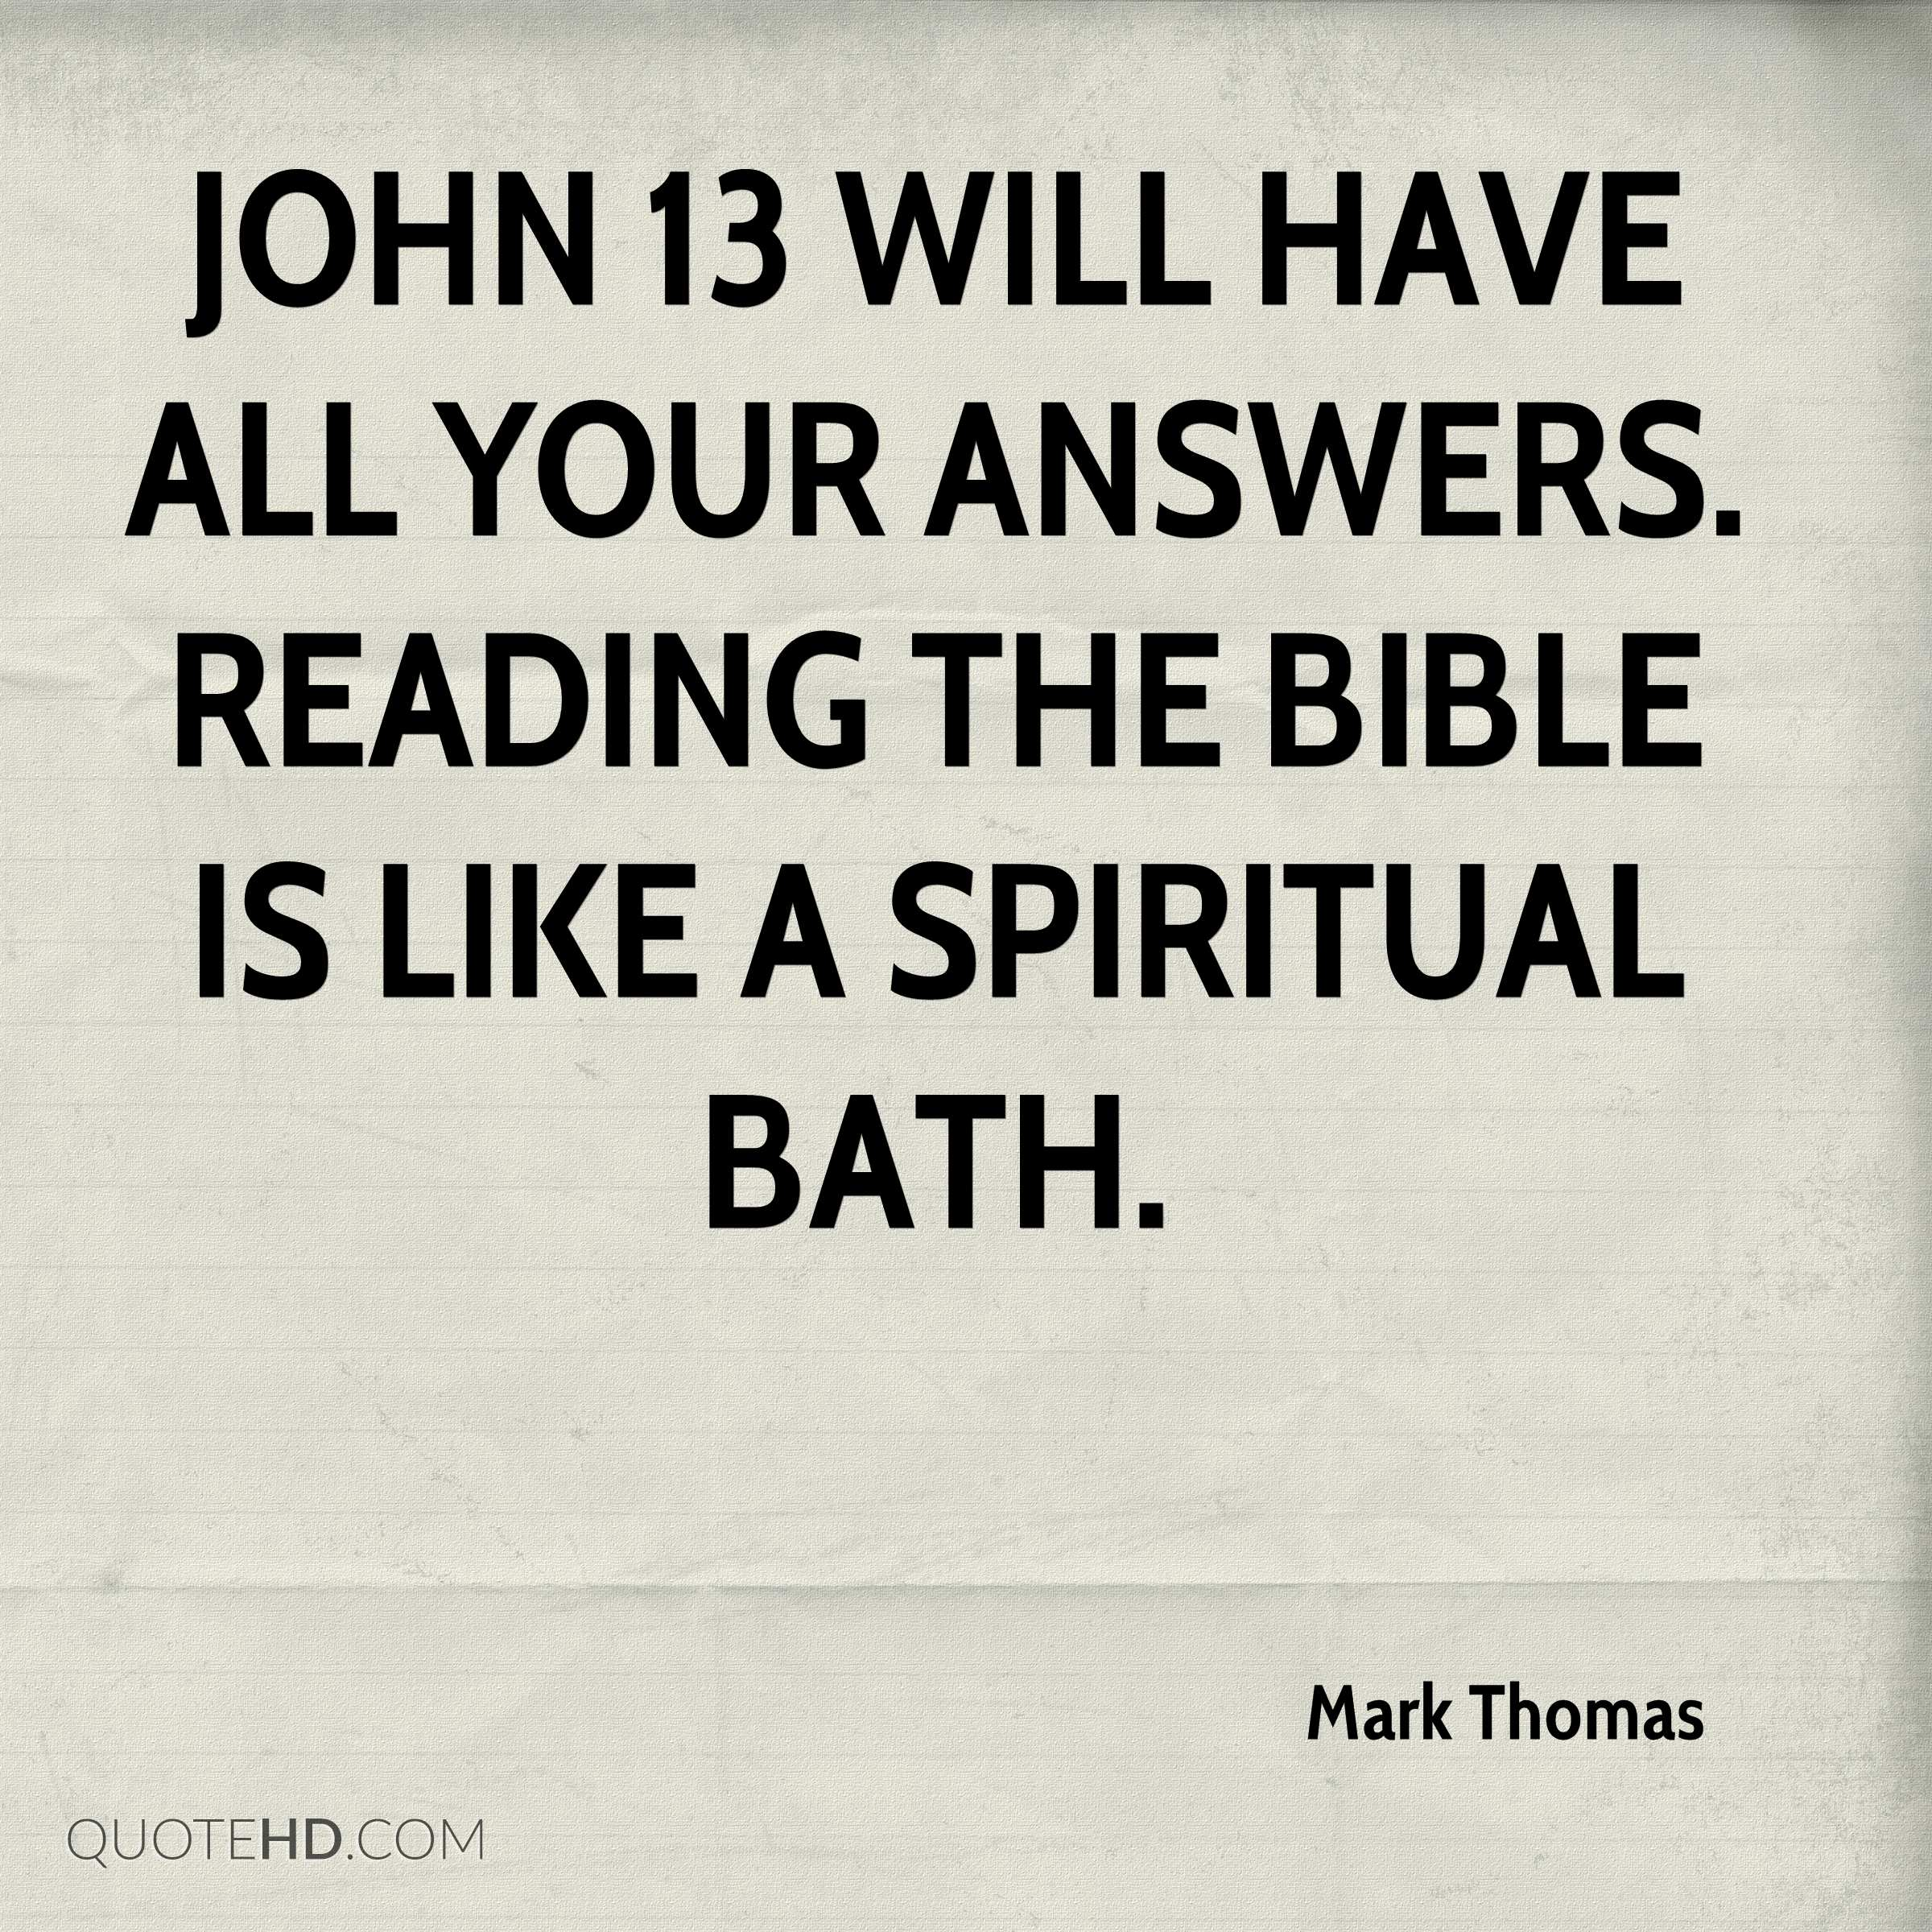 John 13 will have all your answers. Reading the Bible is like a spiritual bath.